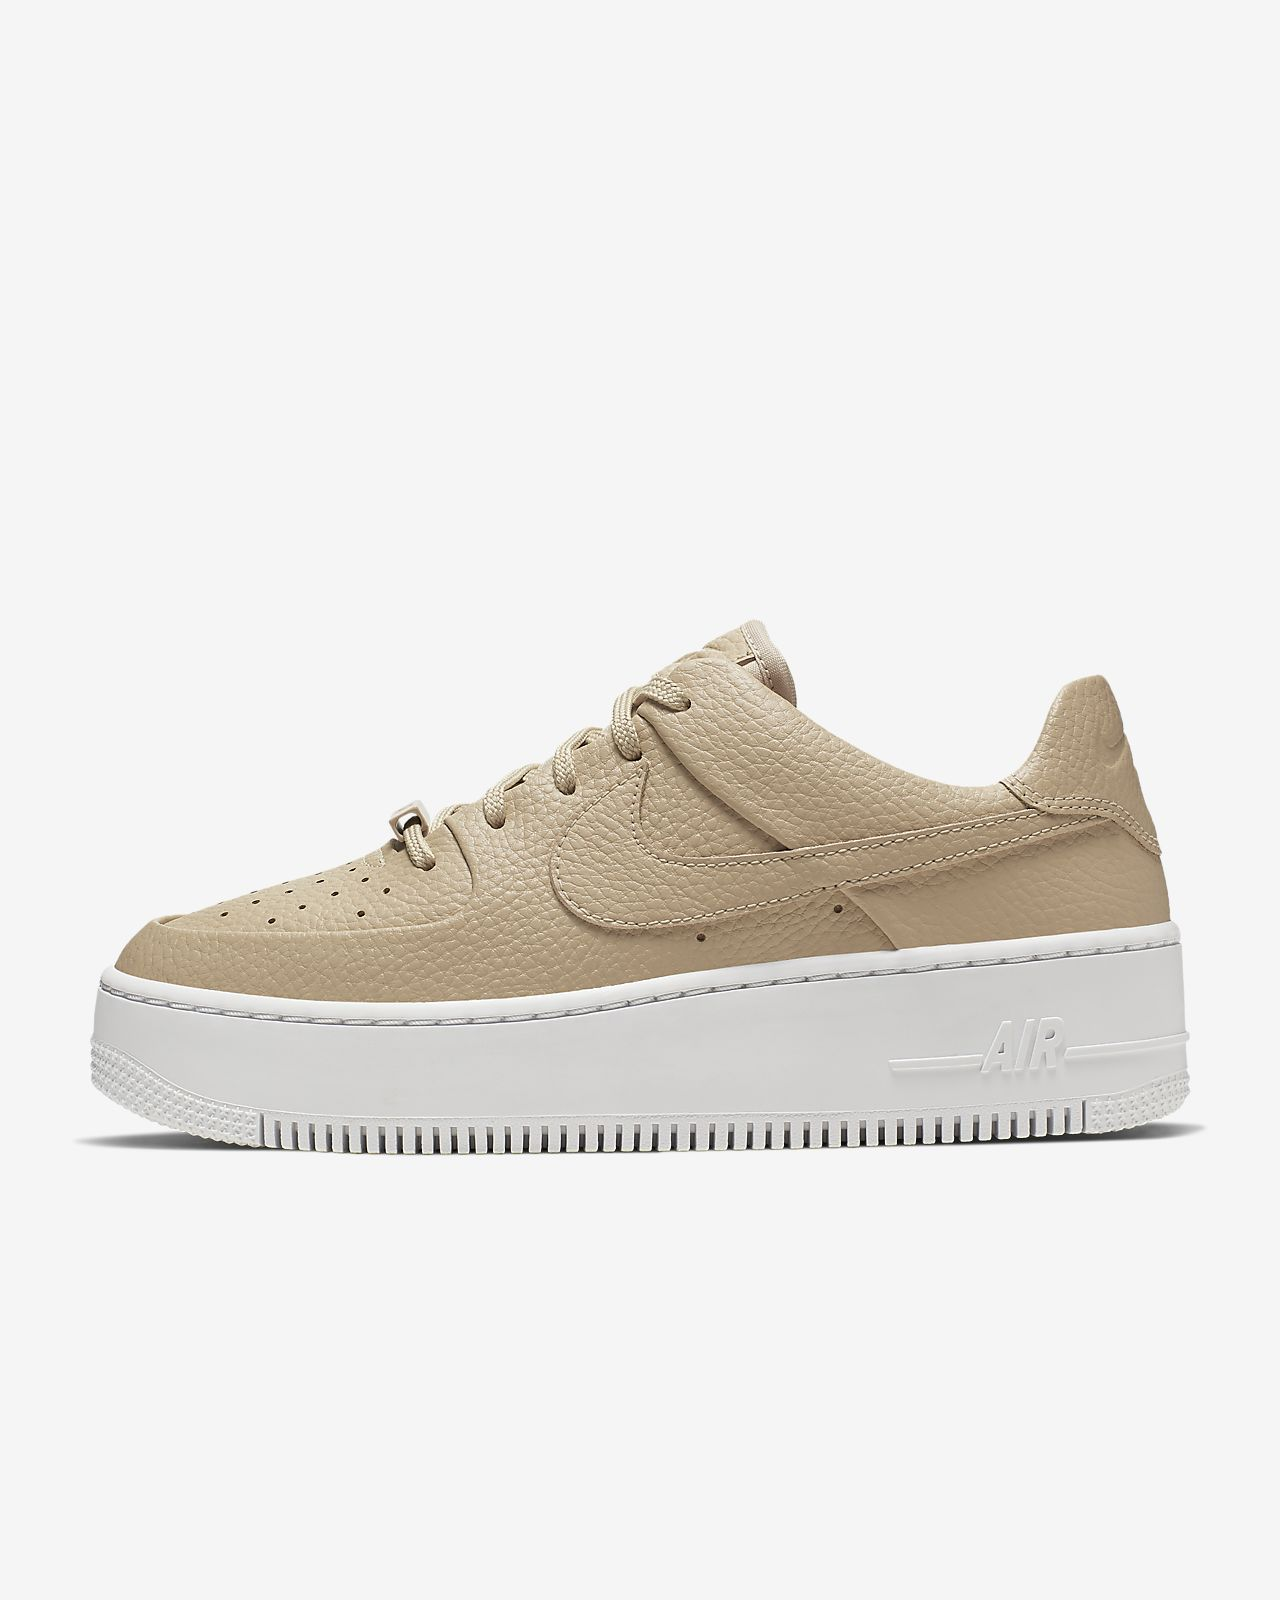 Chaussure Nike Air Force 1 Sage Low 2 pour Femme